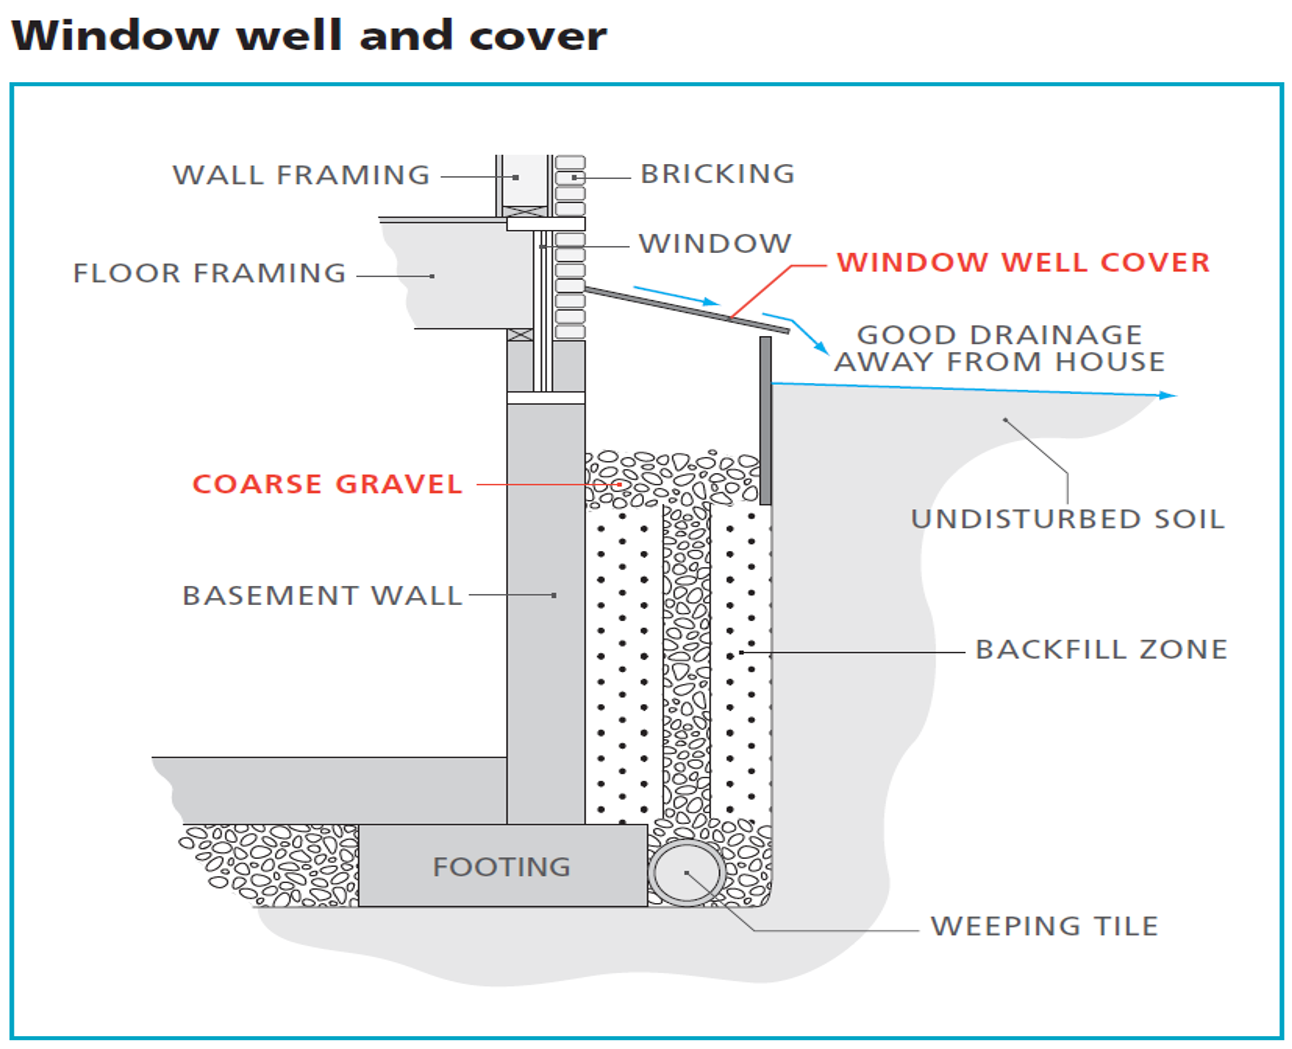 A schematic showing the installation of a window well and cover.